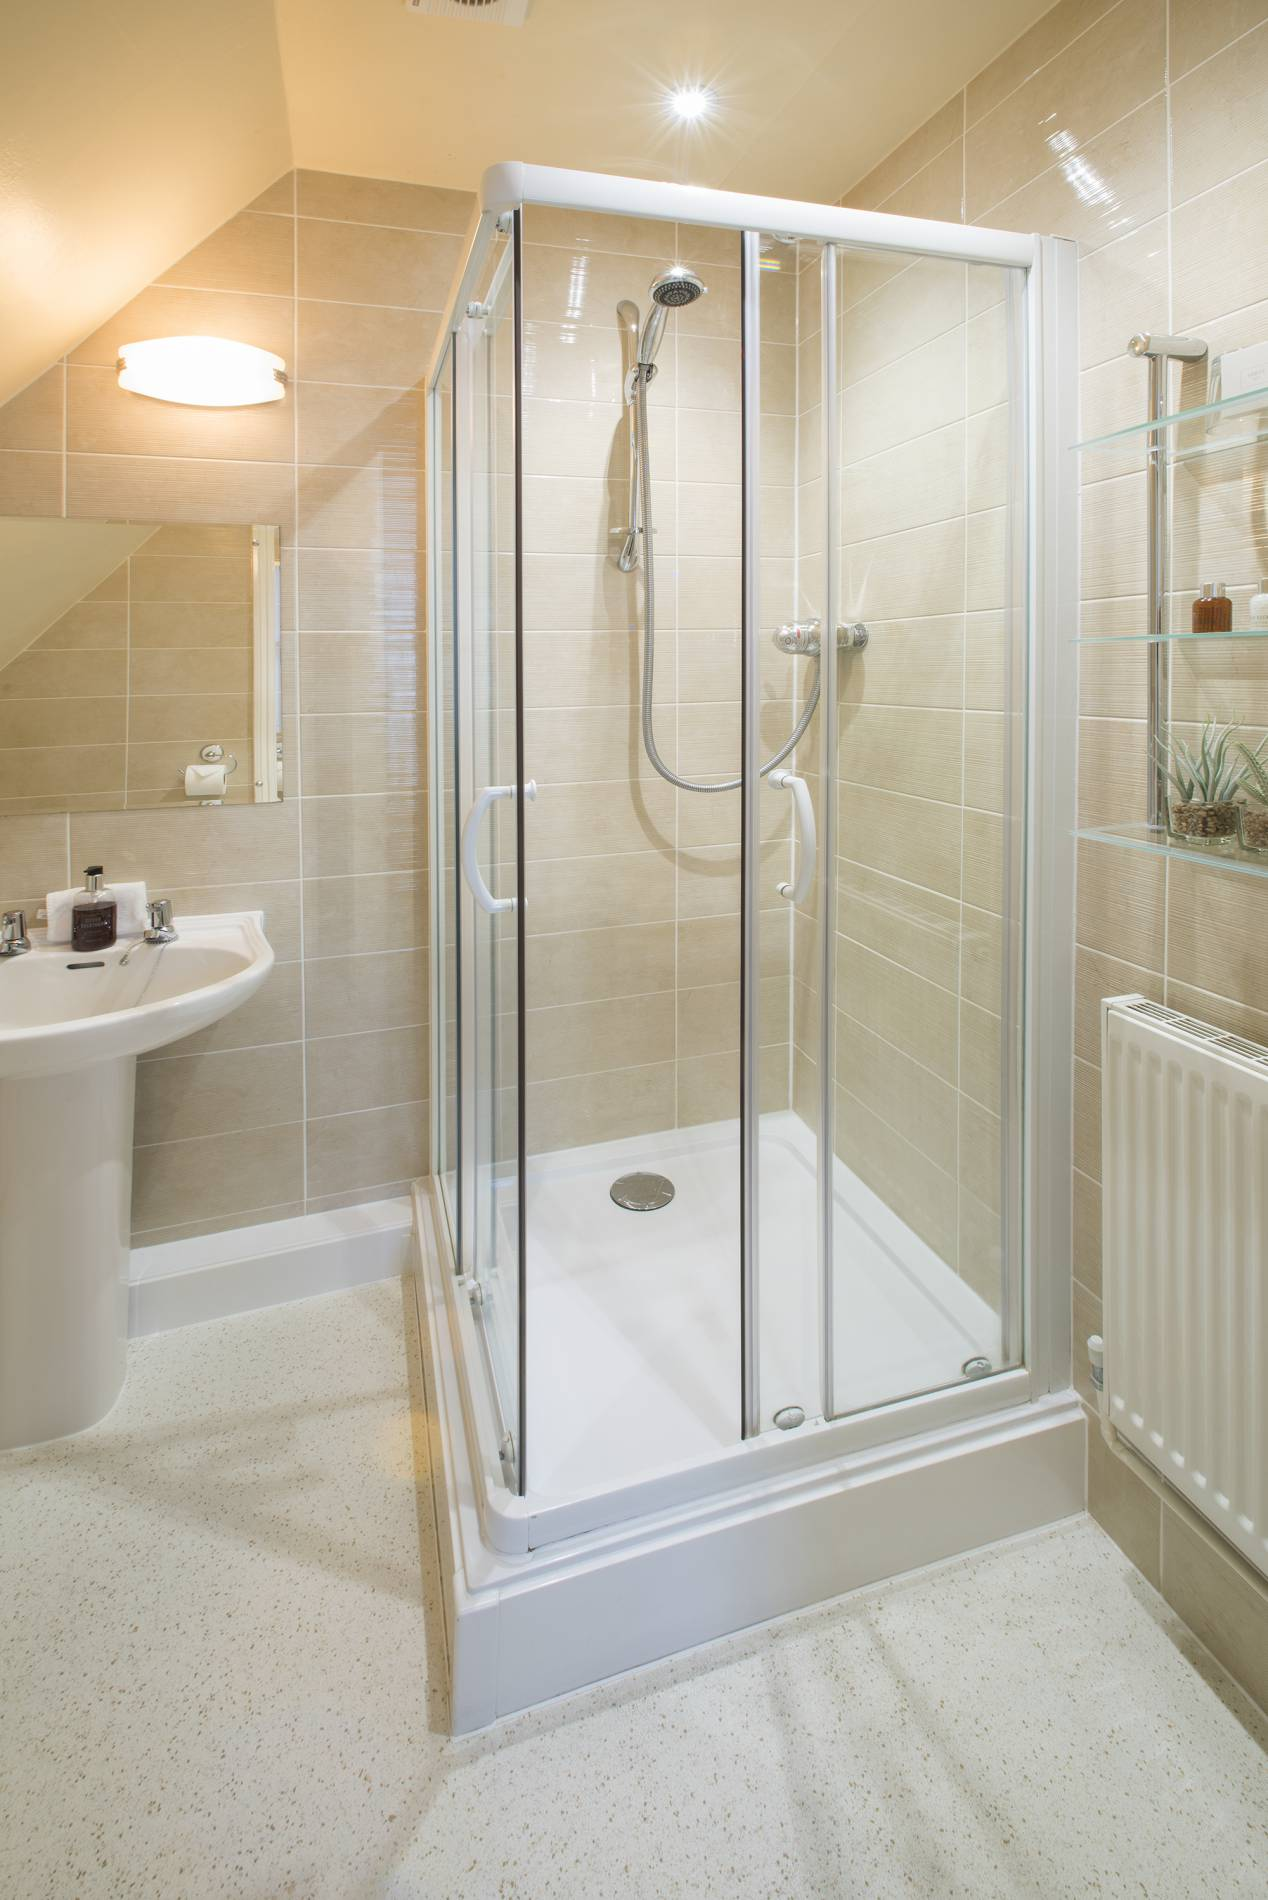 Yorke Lodge Bed and Breakfast Canterbury Kent double bedroom en suite 0014